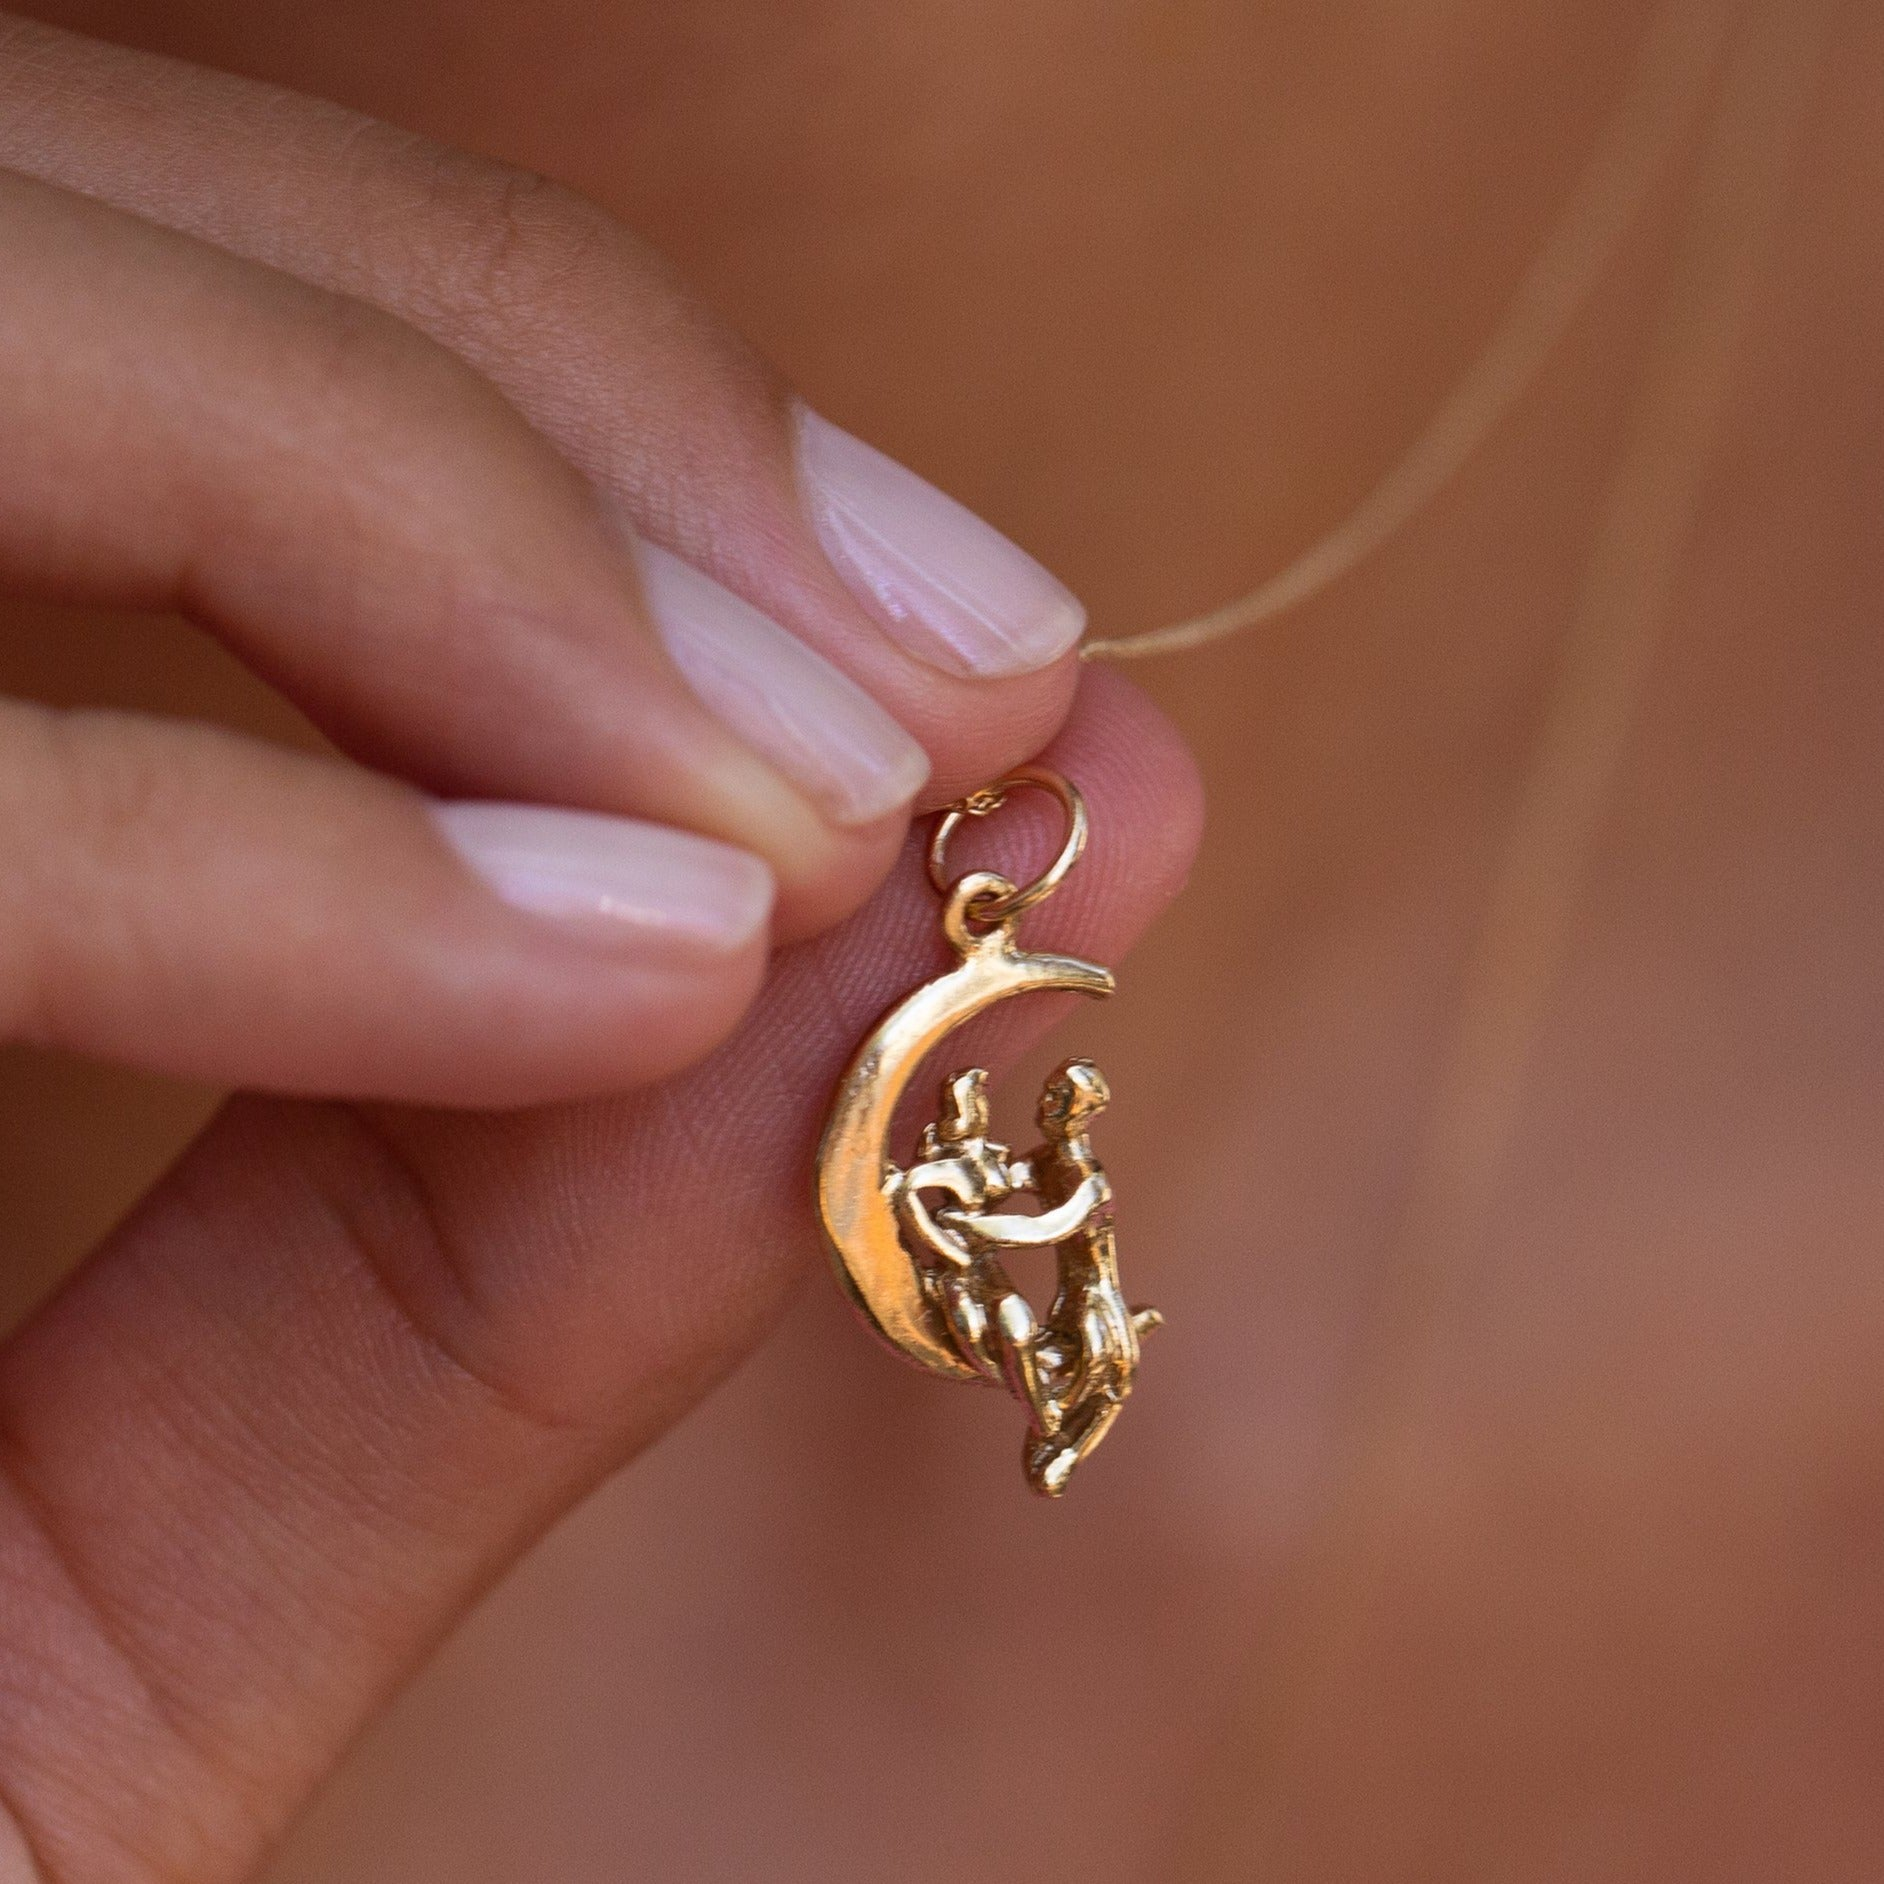 Lover's on a Crescent Moon 10k Gold Charm